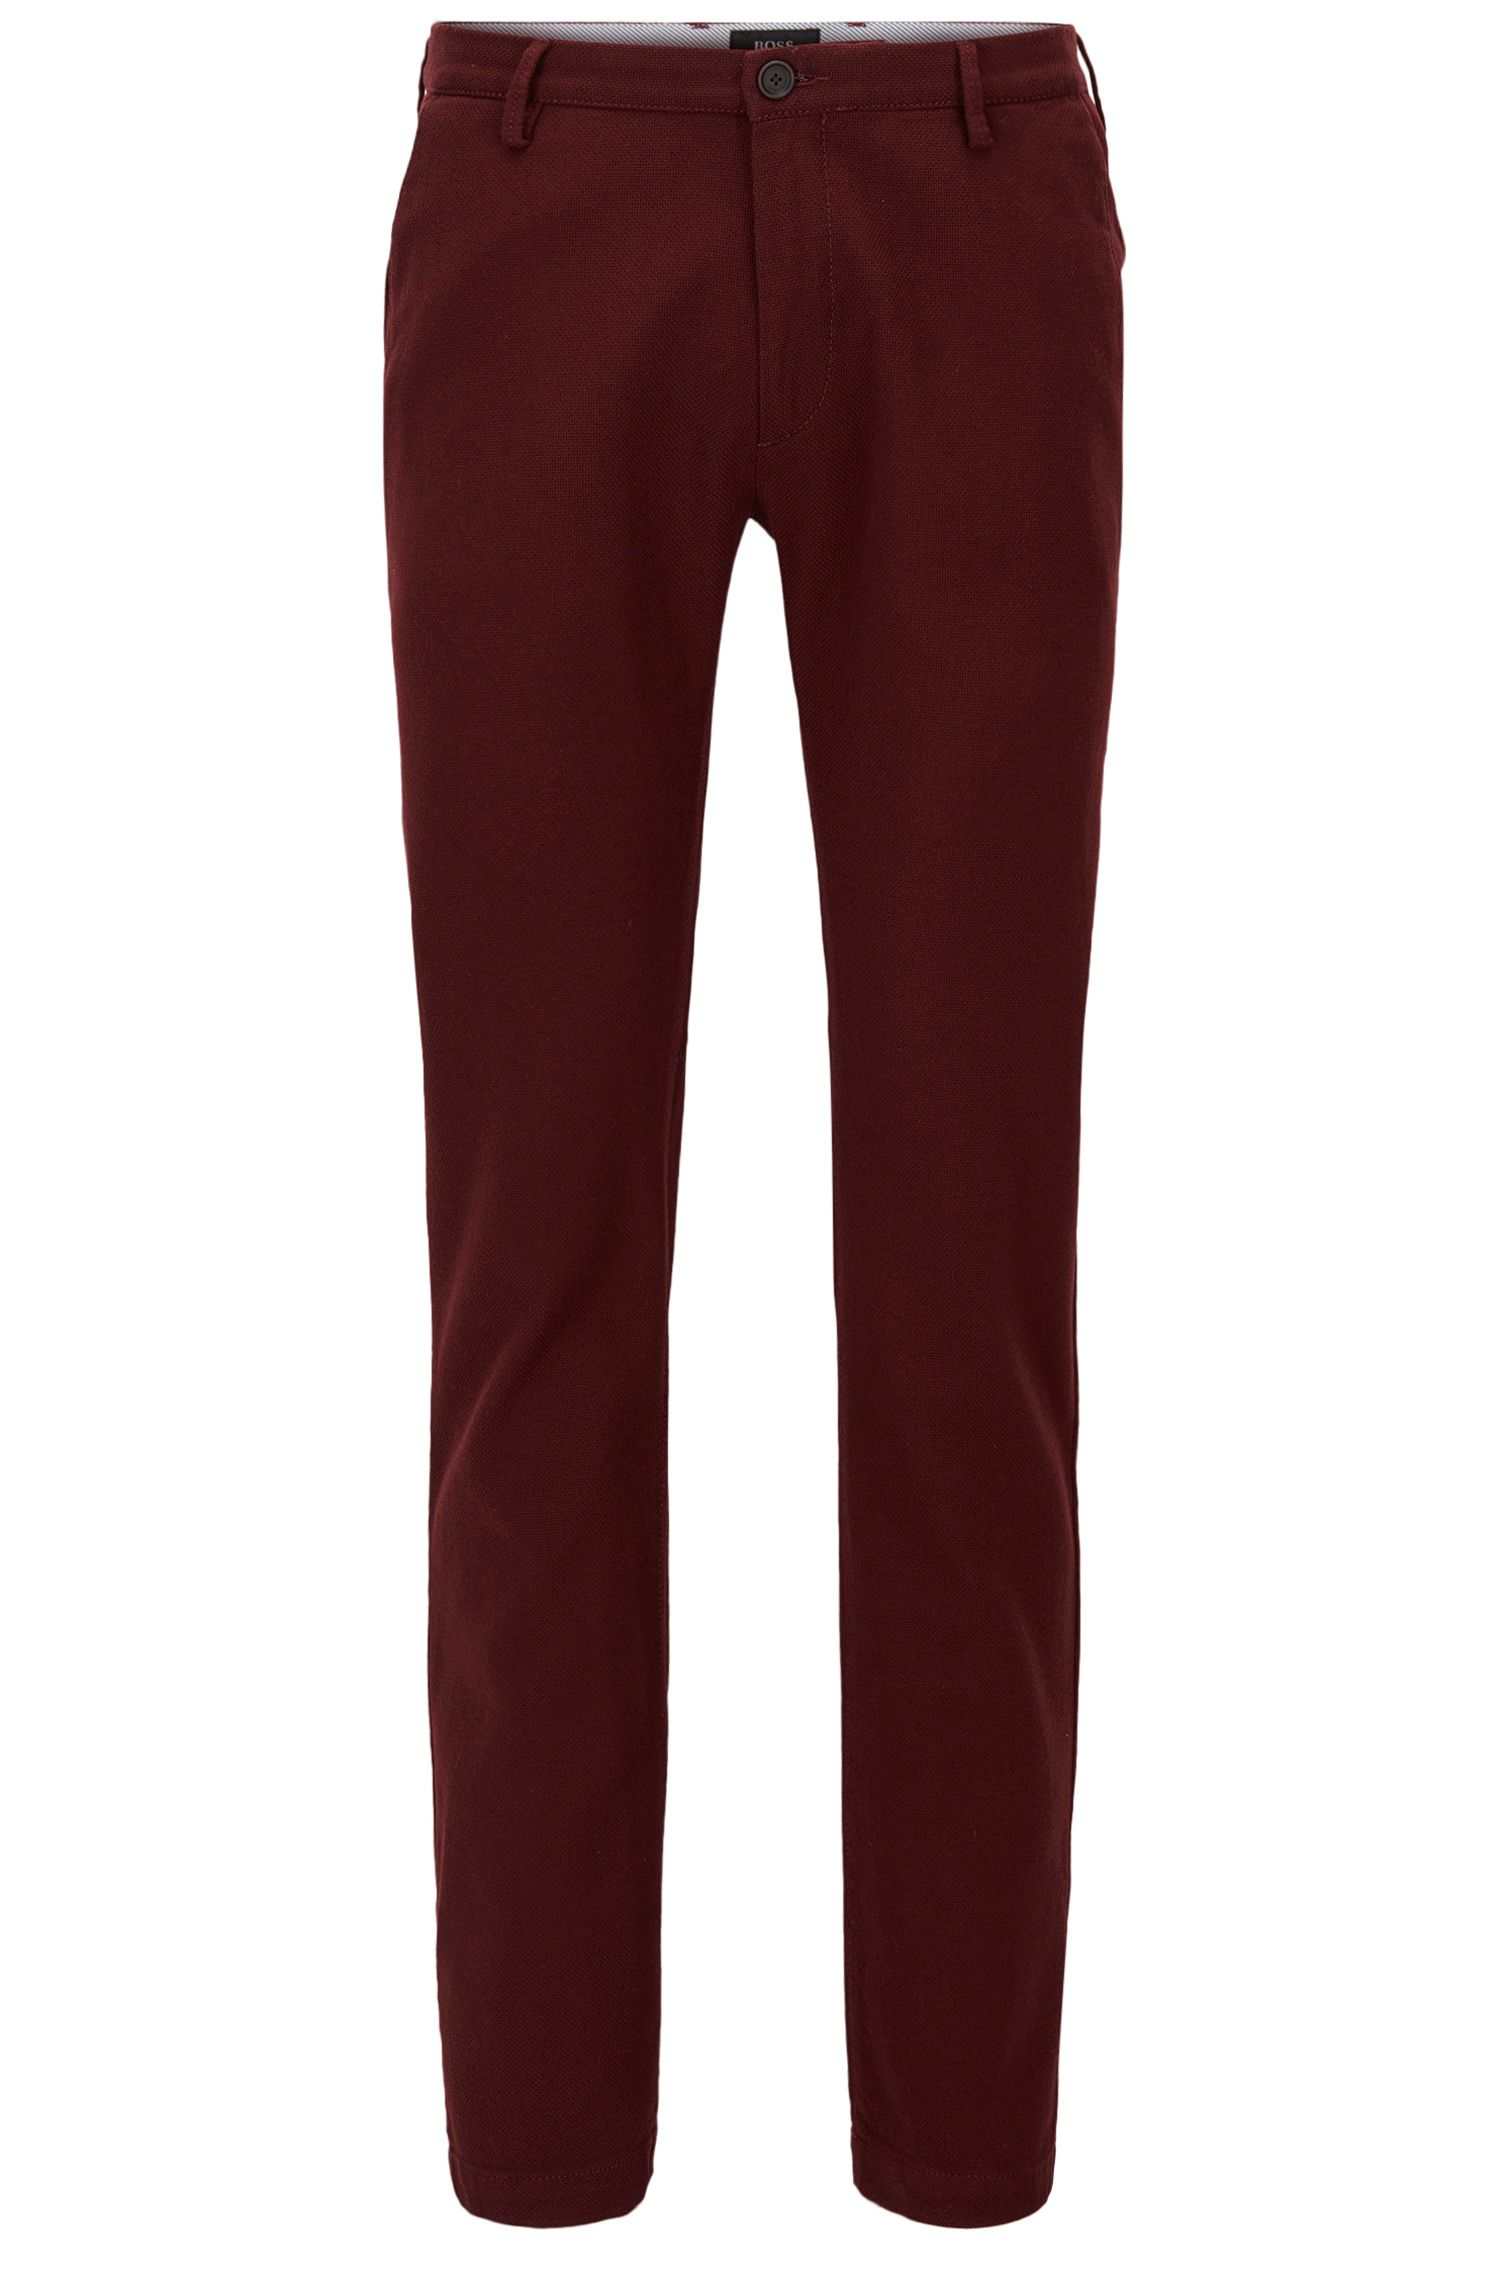 Stretch Cotton Chino Pants, Slim Fit | Rice W